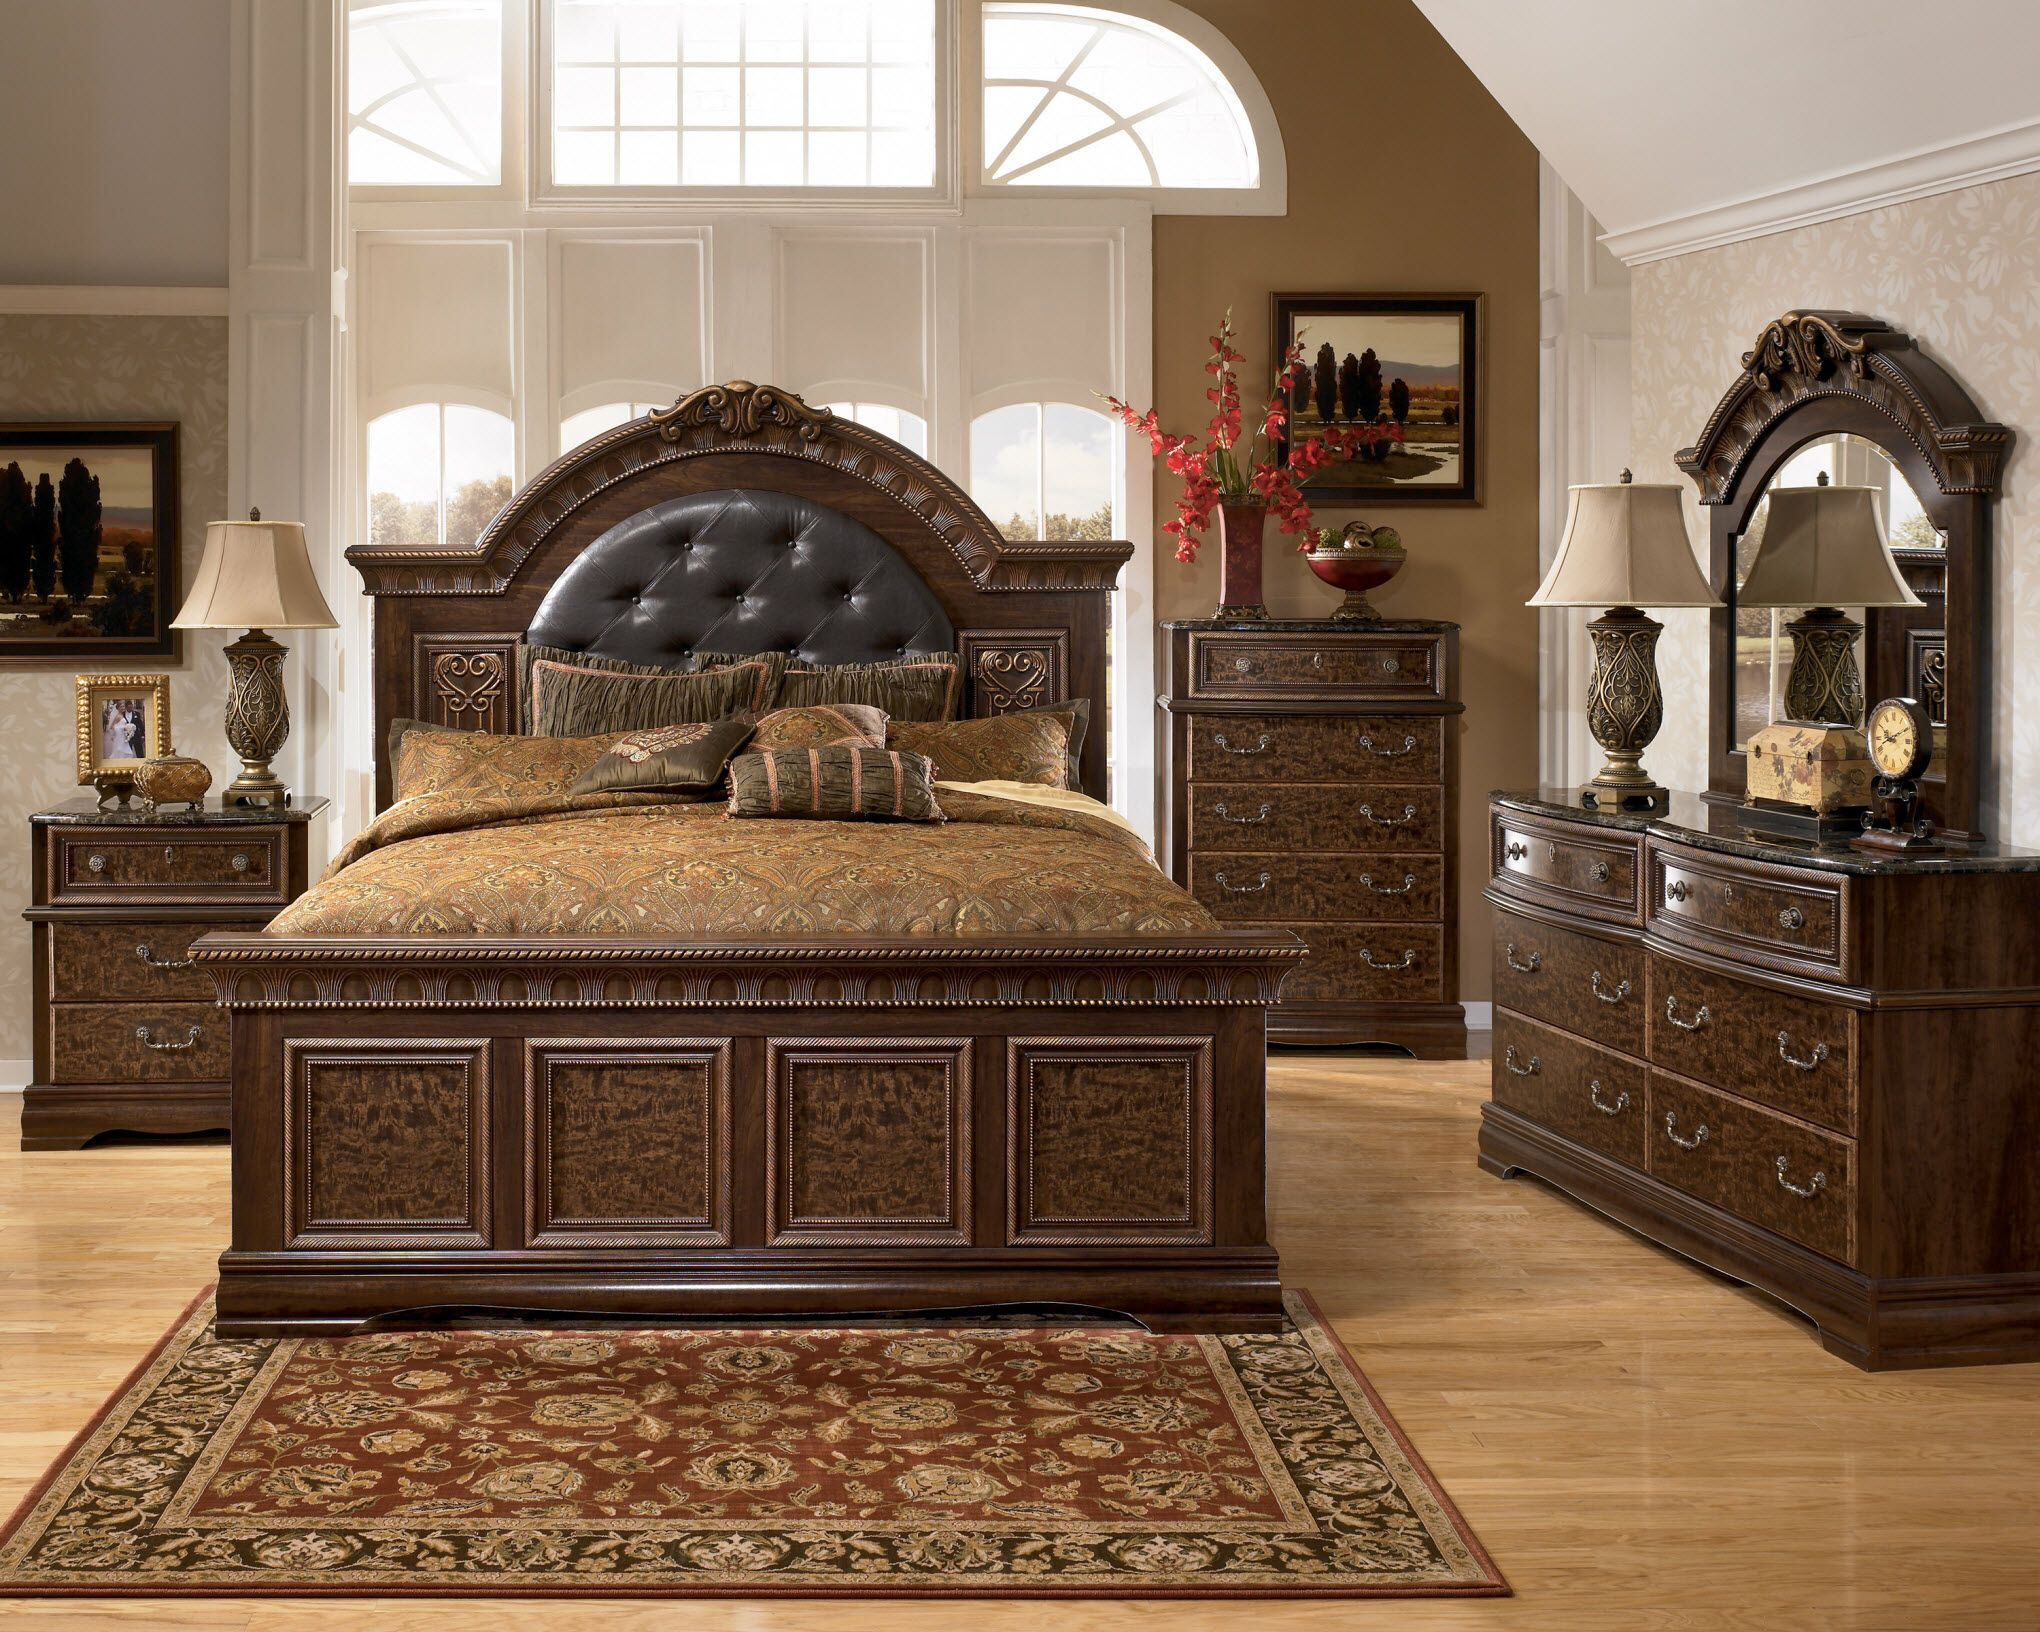 Considering To Purchase Exotic Bedroom Furniture Surely Would Be Nice  Choice, In The Term When Need To Choose Between Purchase Classic Or Exotic